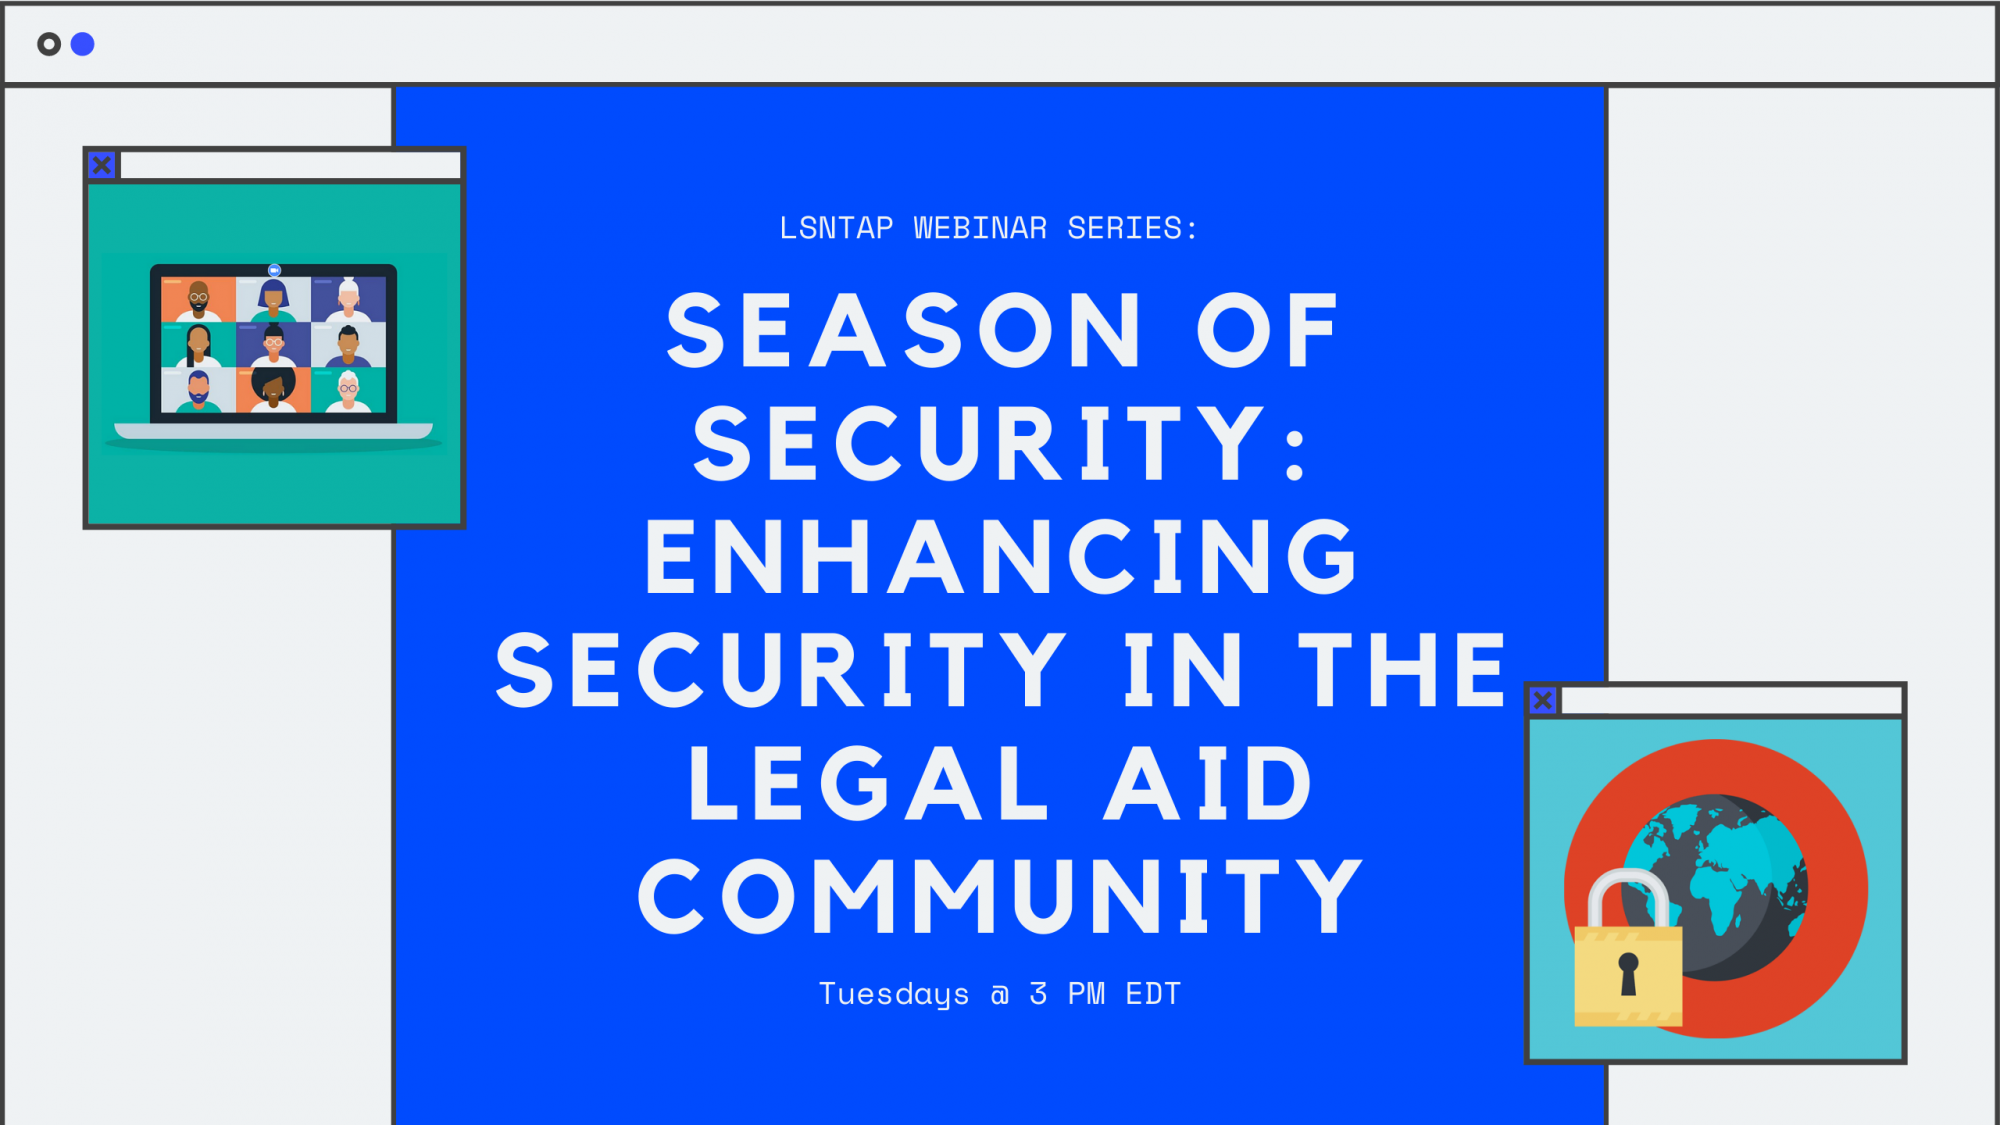 Join LSNTAP for a Webinar Series on Security for Legal Aid Programs. Together We Can Enhance Security in the Legal Aid Community.